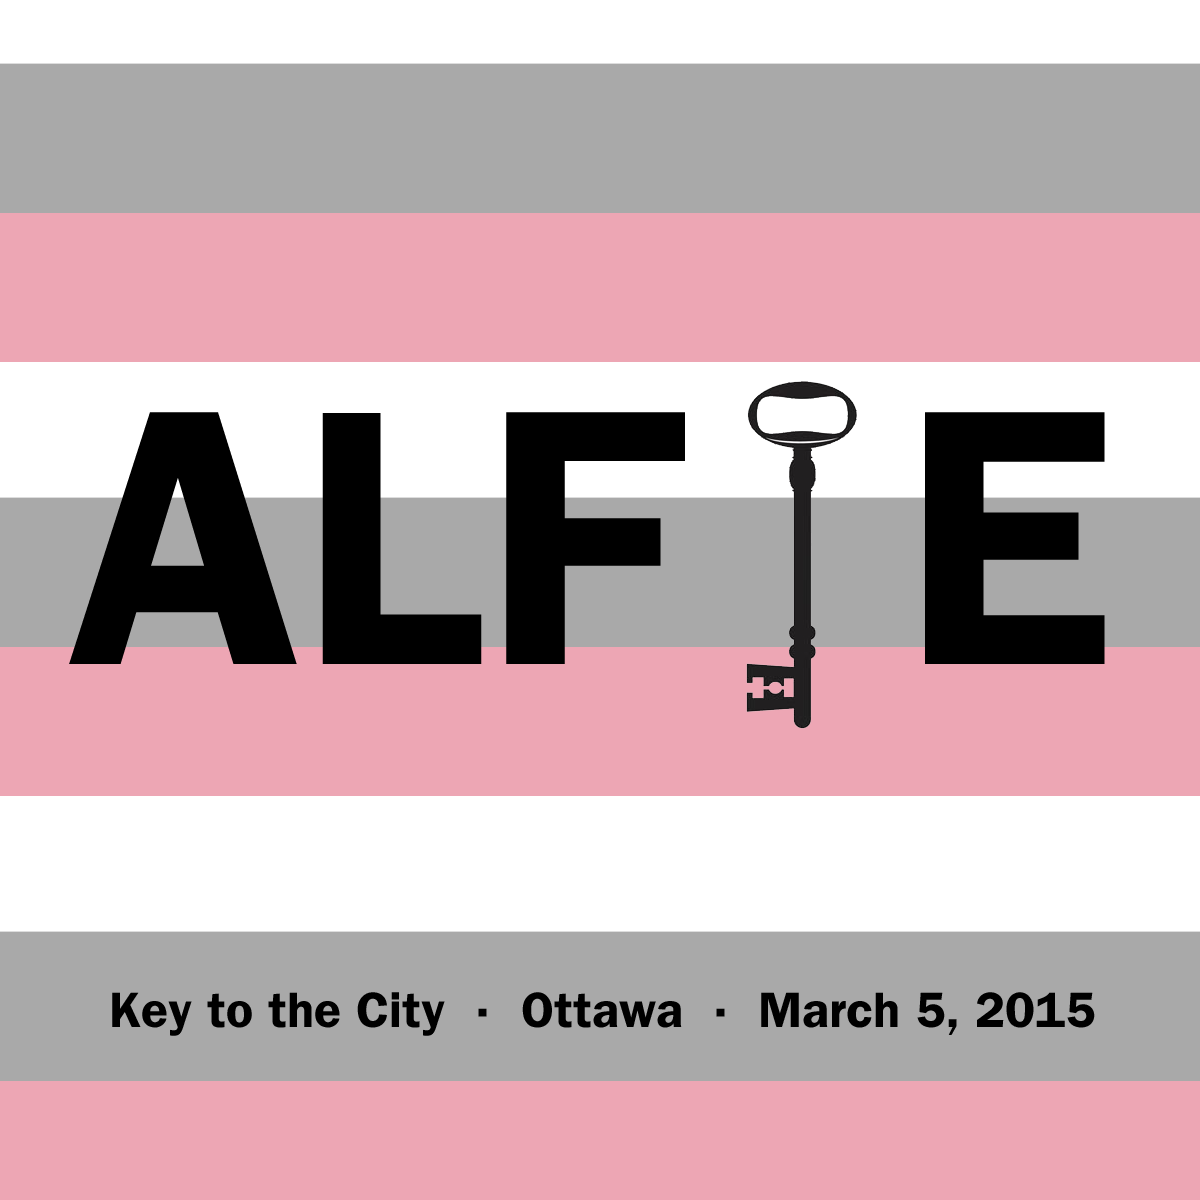 I'm pleased to announce that I will award the Key to the City to Daniel Alfredsson in March. http://t.co/Yi8mWEoxY3